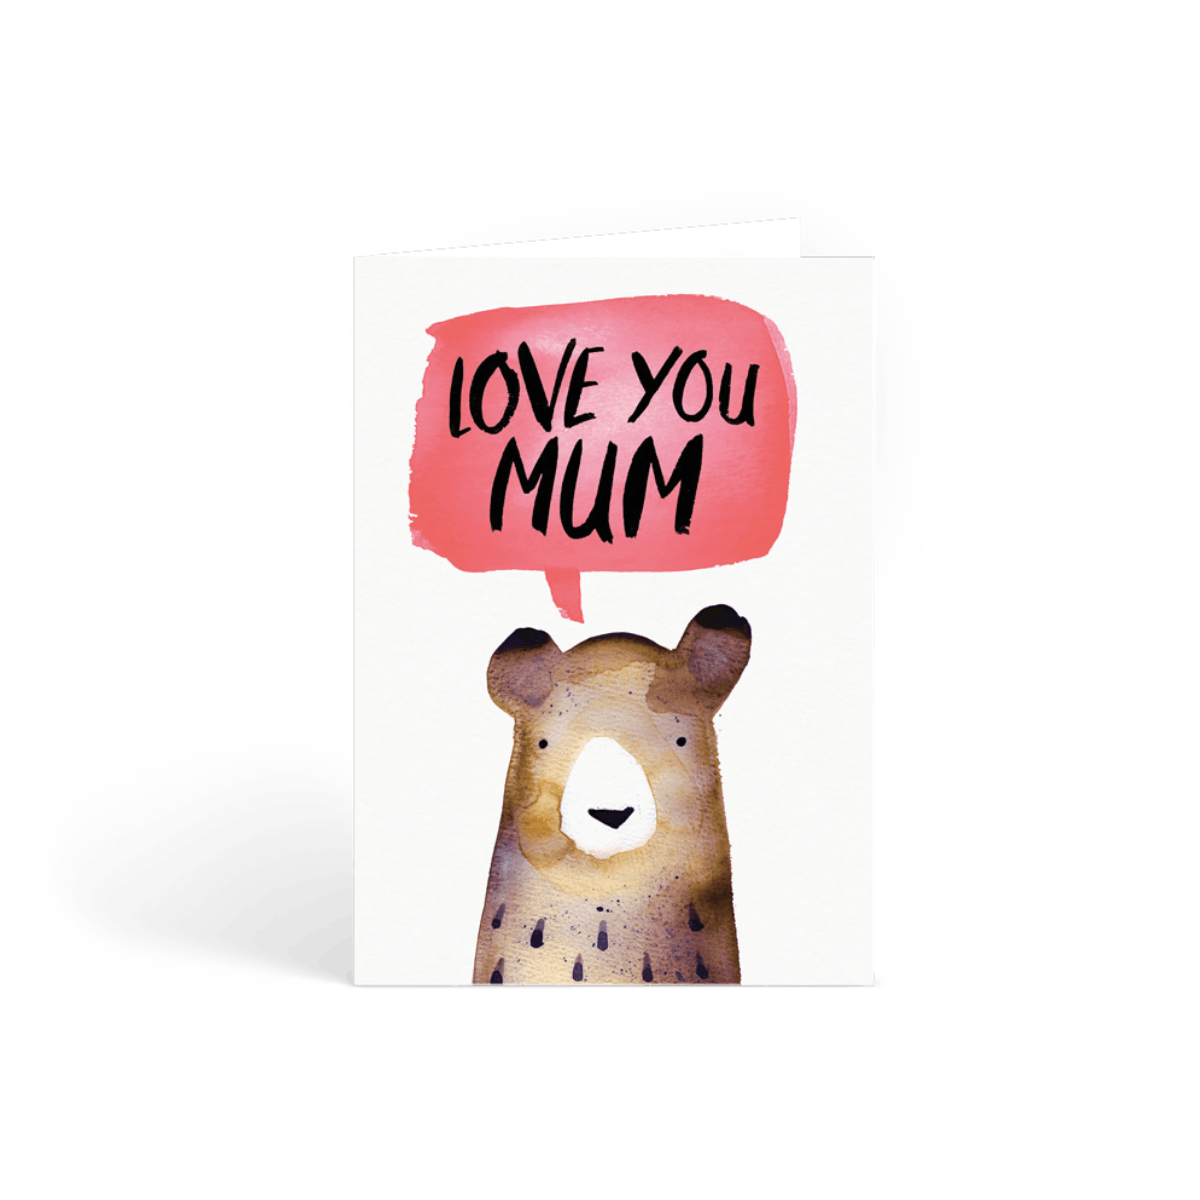 Https%3a%2f%2fwww.papier.com%2fproduct image%2f27498%2f2%2flove you bear 6857 front 1504270180.png?ixlib=rb 1.1